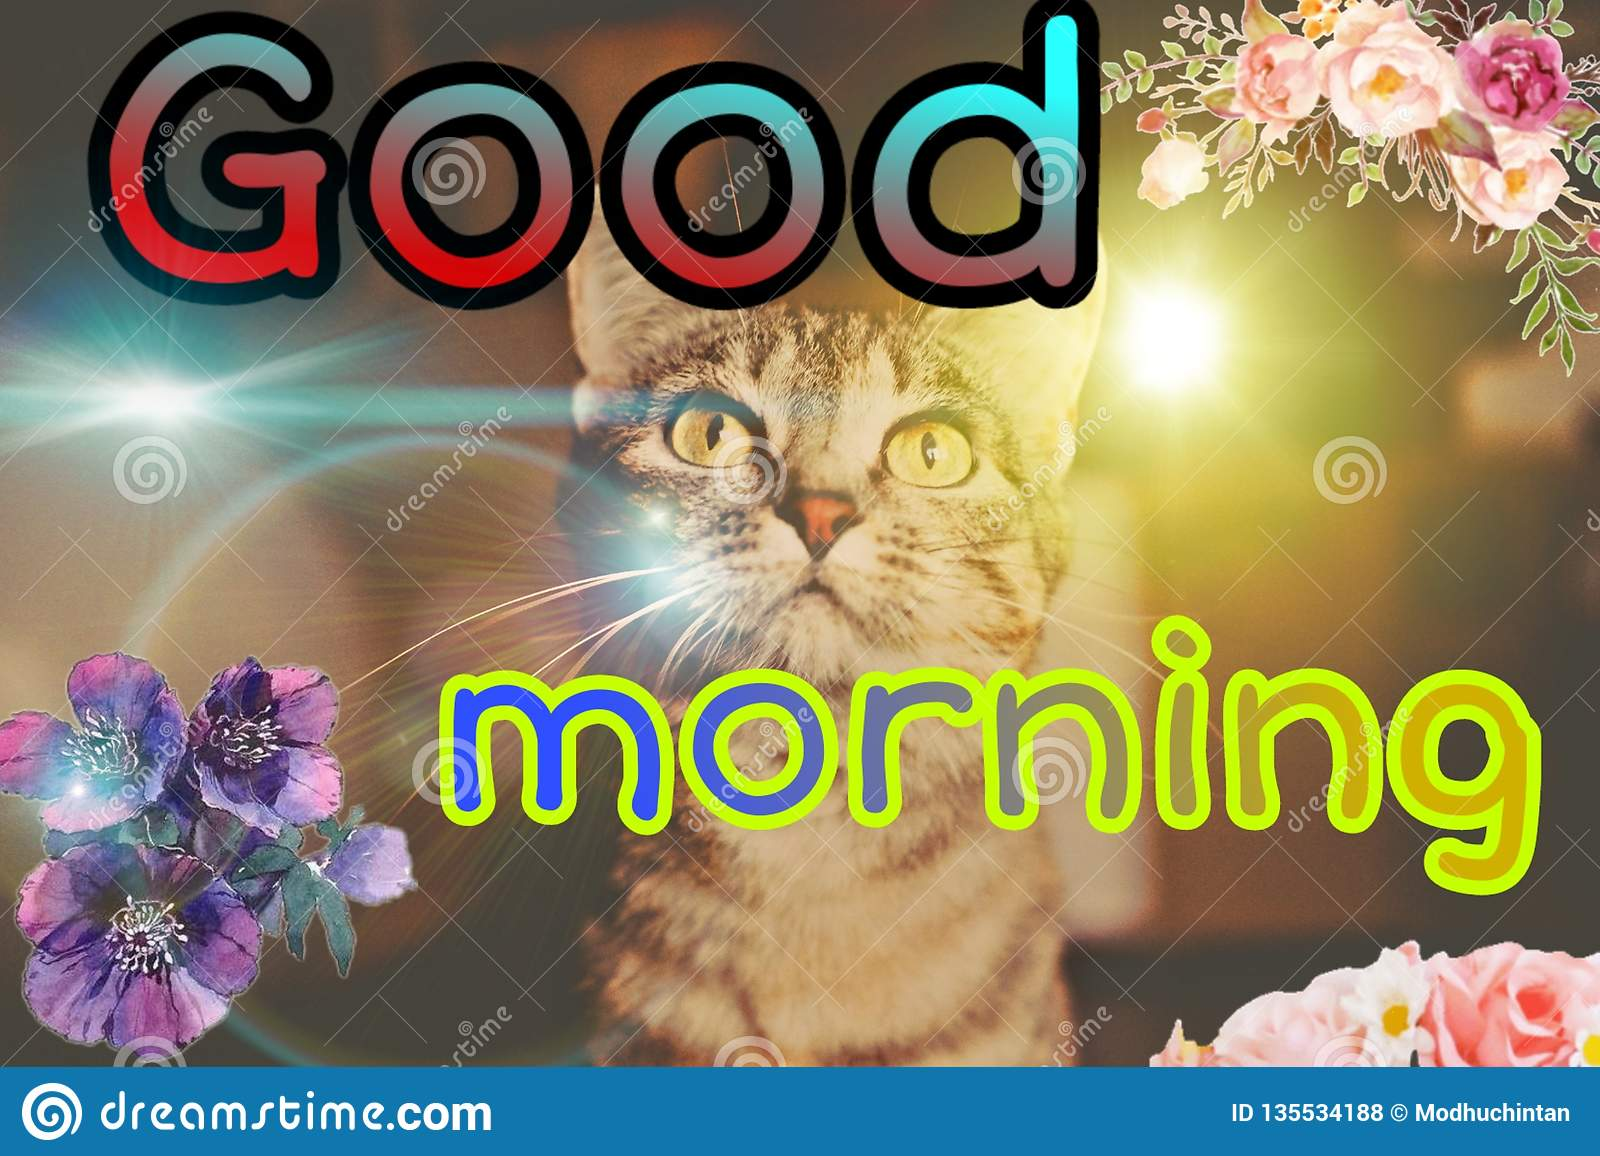 Good Morning Picture Stock Illustration Illustration Of Happy